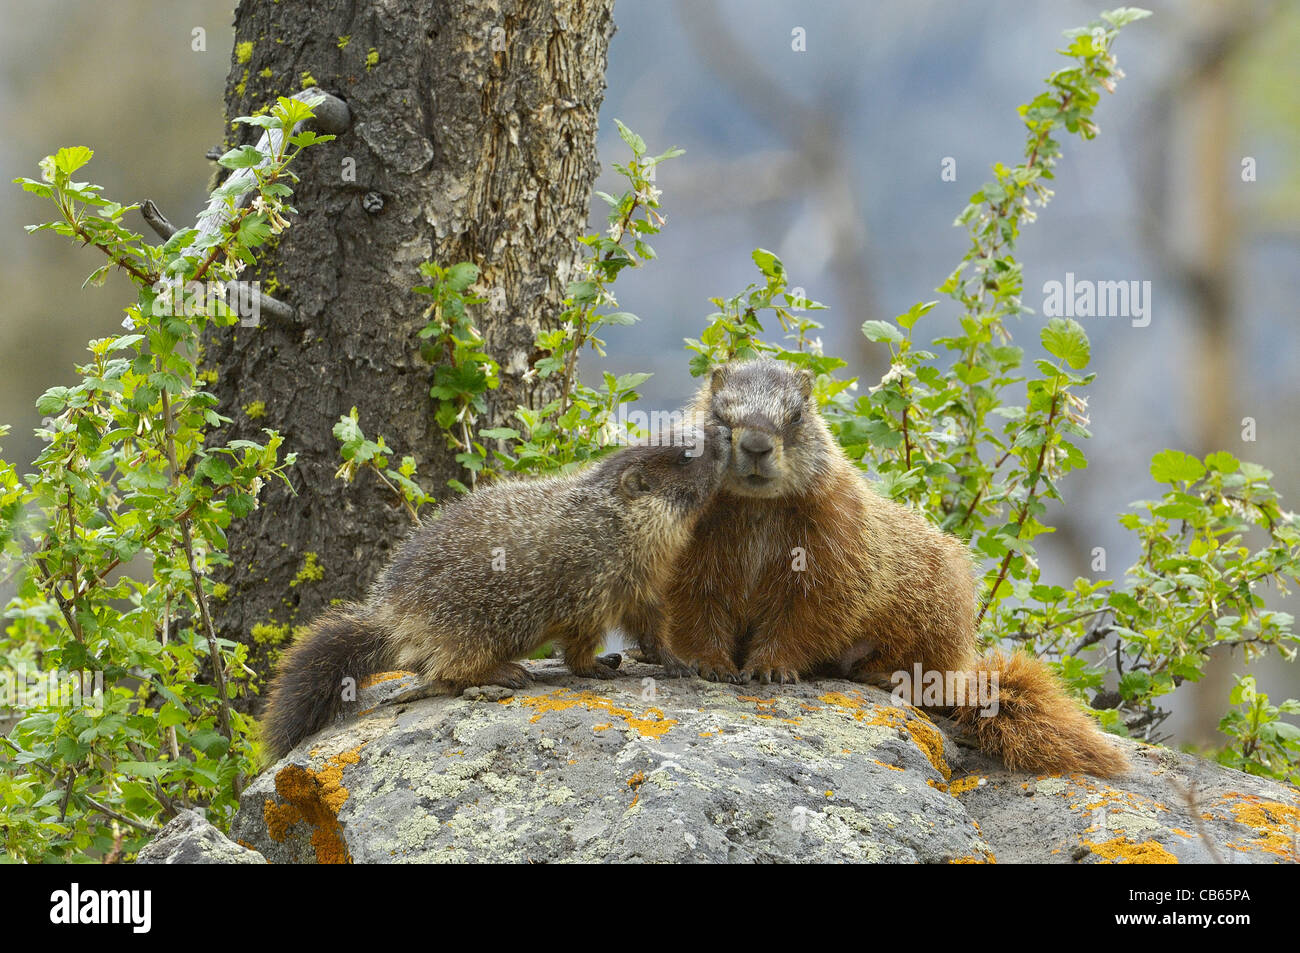 Yellow-bellied Marmot mother with young. - Stock Image